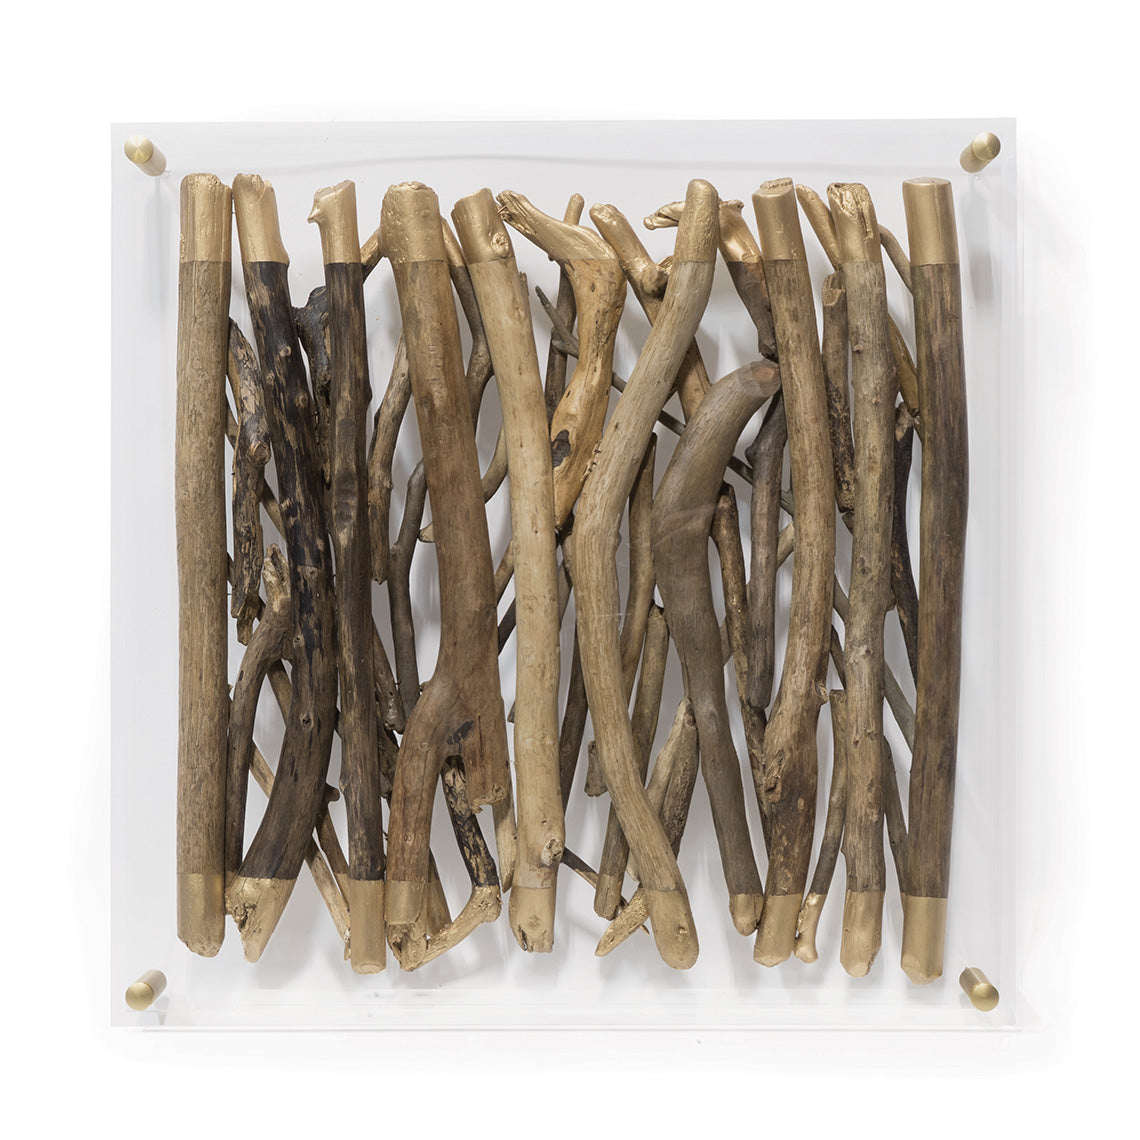 Acrylic Driftwood Wall Decor, Sq